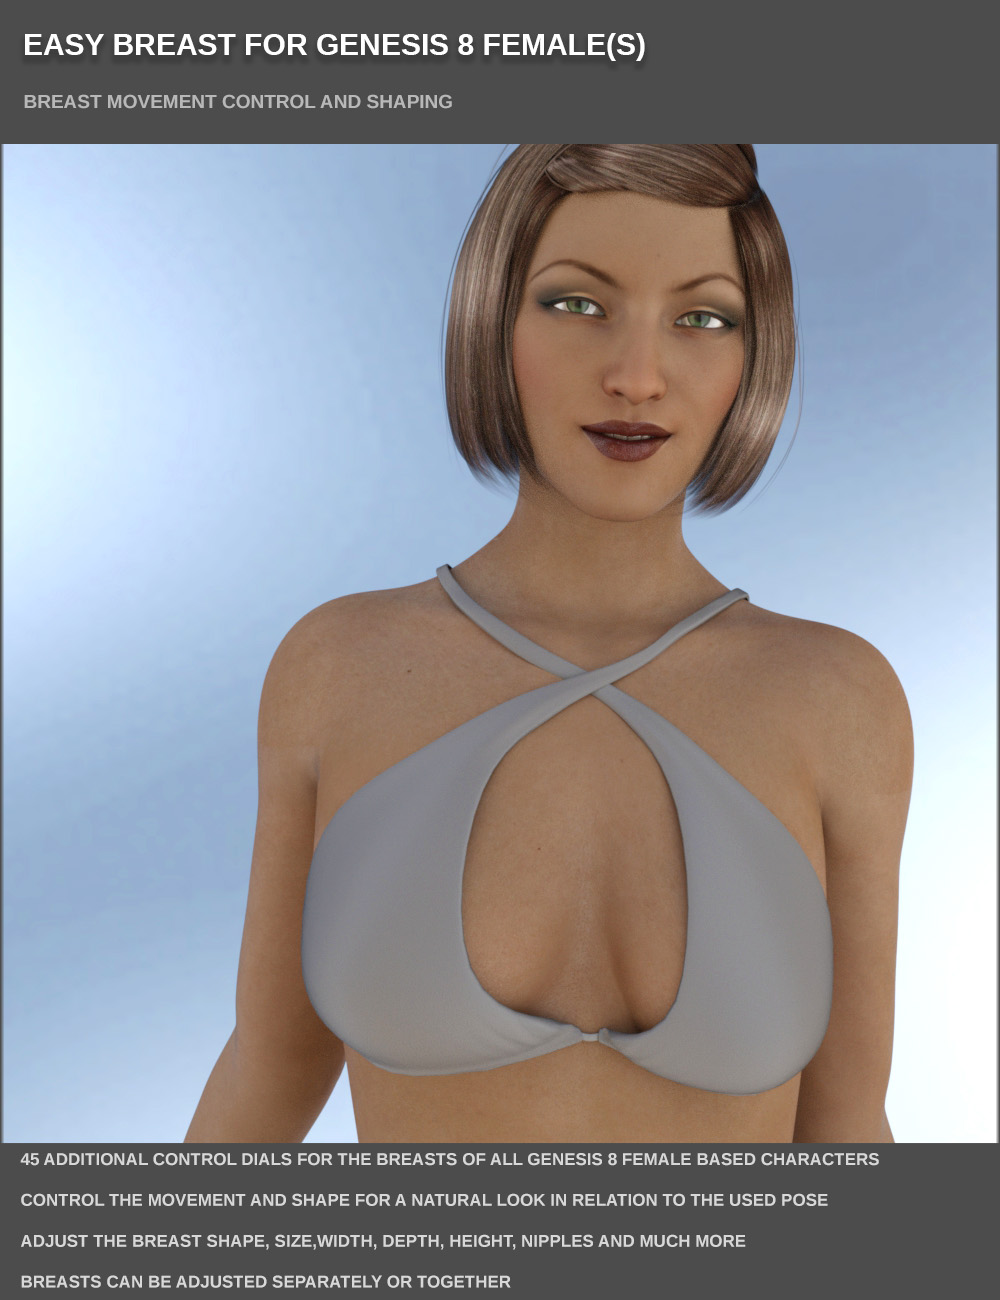 EASY BREAST FOR GENESIS 8 FEMALES